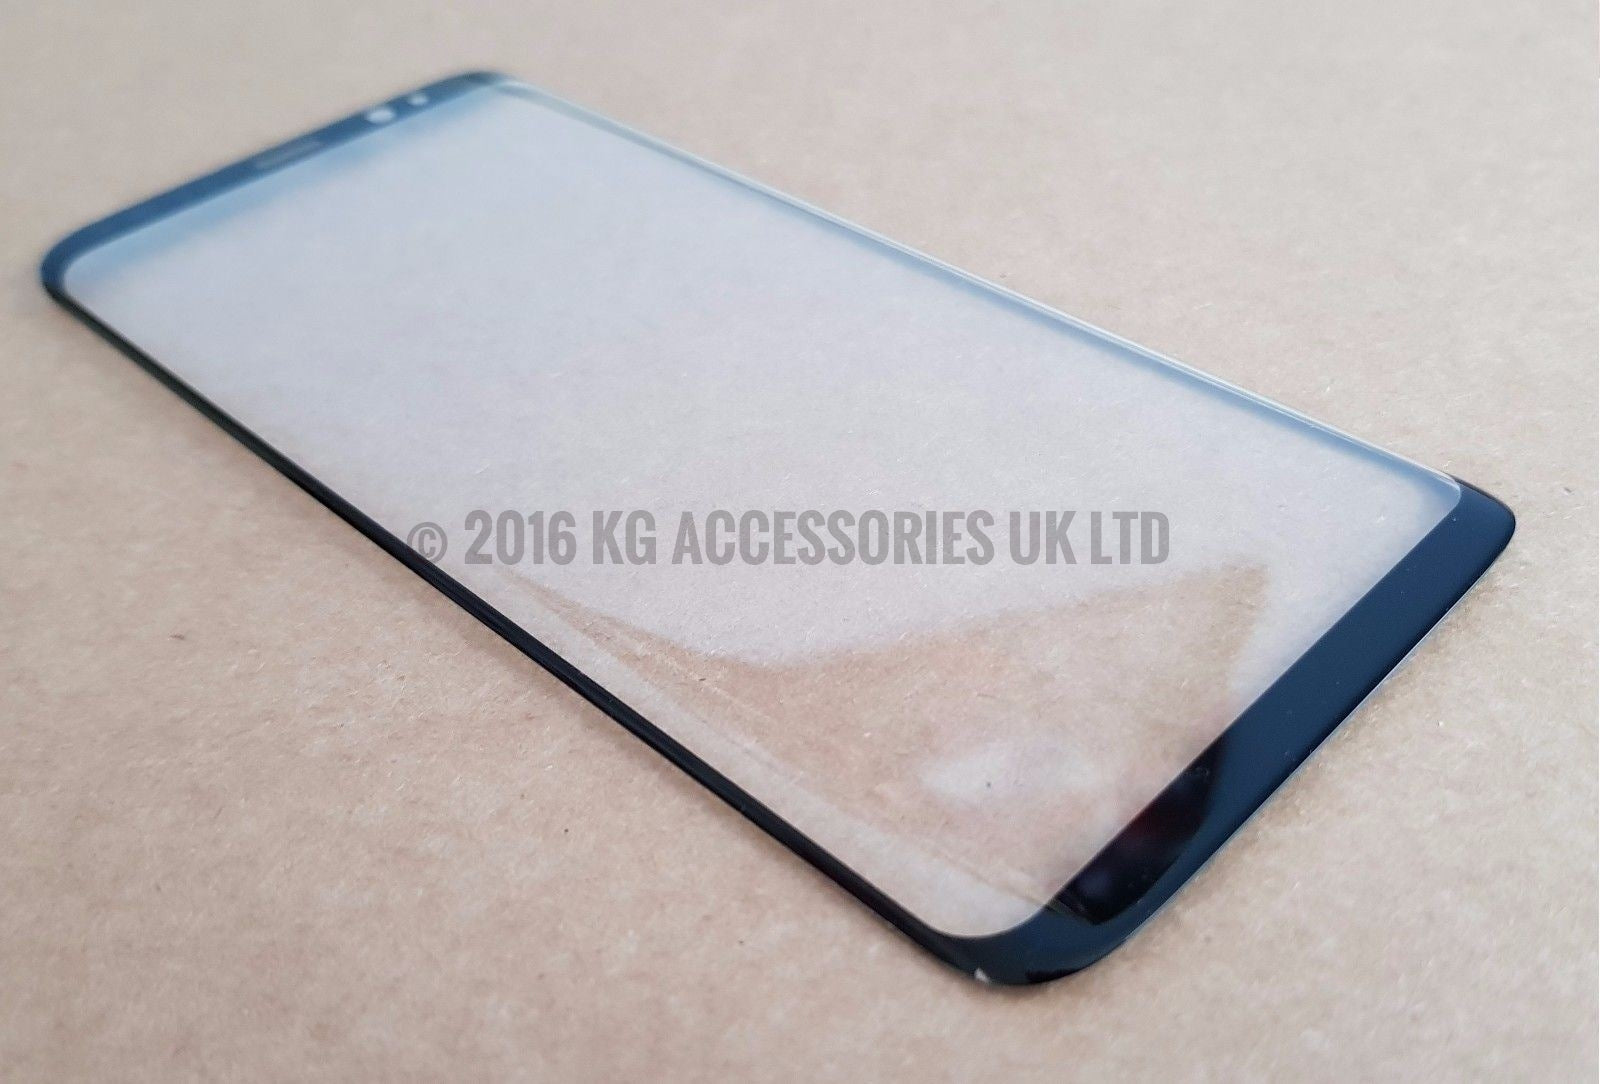 Samsung galaxy s8 front glass screen replacement repair kit the samsung galaxy s8 front glass screen replacement repair kit solutioingenieria Image collections